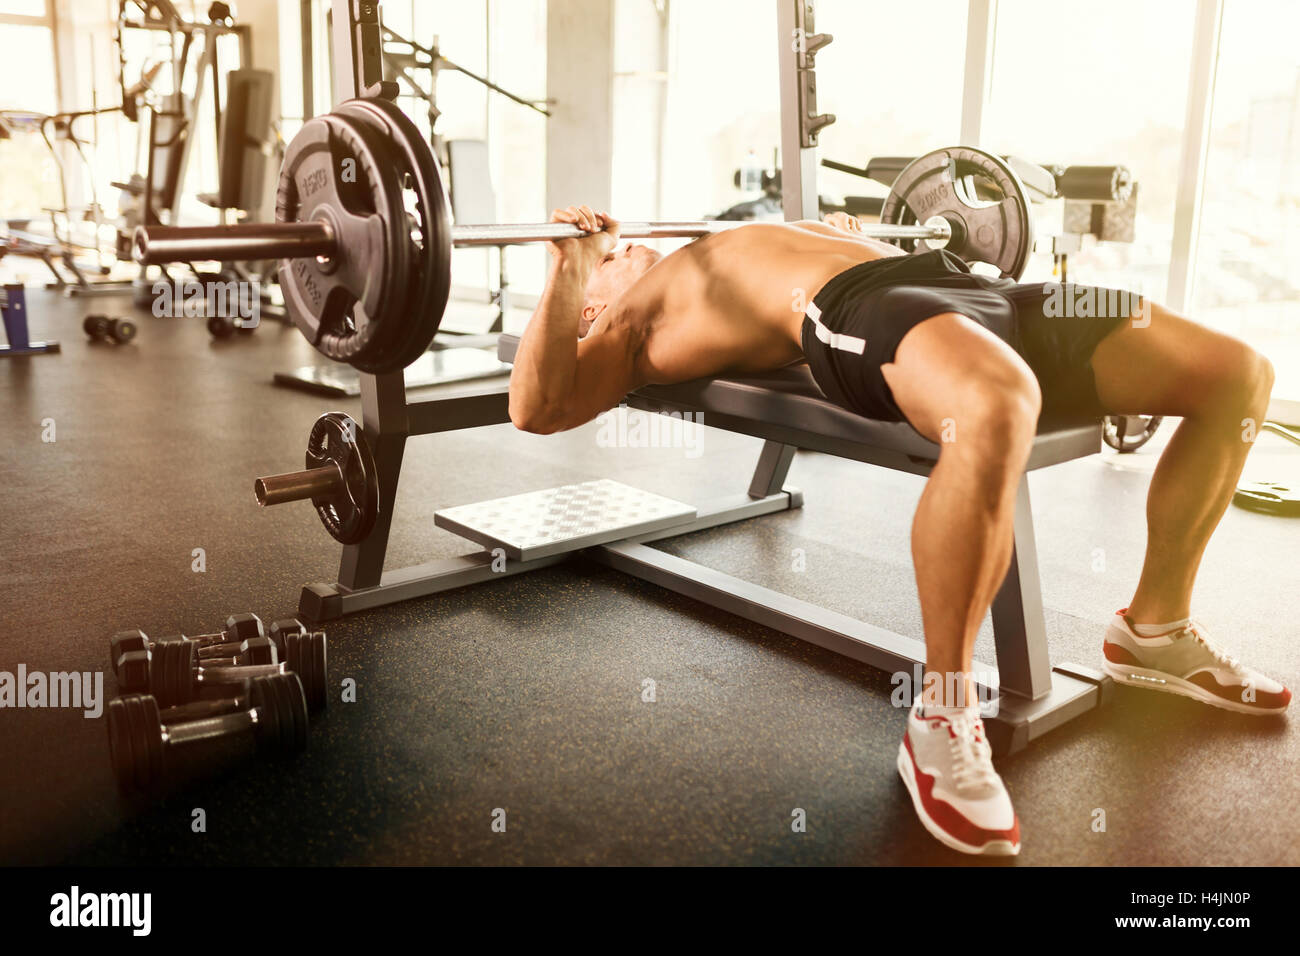 Muscular bodybuilder bench press workout - Stock Image